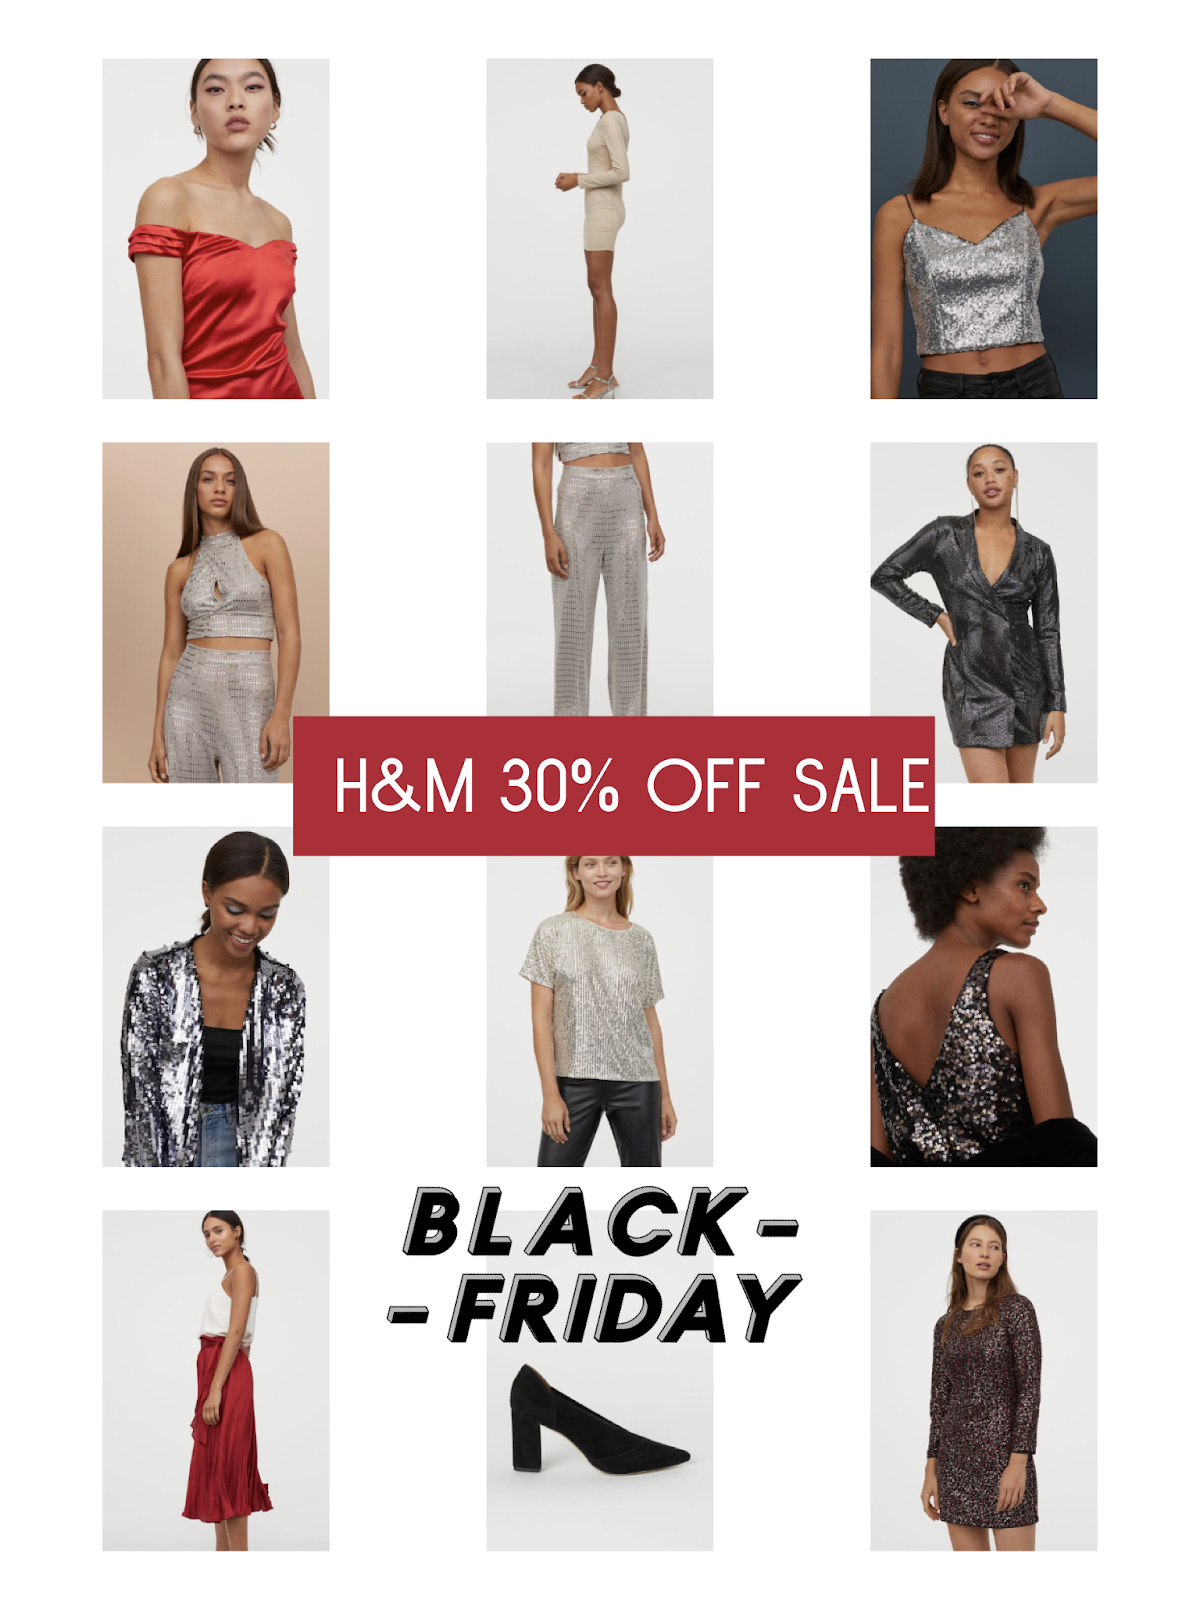 Black Friday Sales and Cyber Monday Deals 2019 | H&M Cyber Monday Sales | Holiday Dresses, Holiday Shoes, Sequin Dresses, Holiday Sequined Dresses